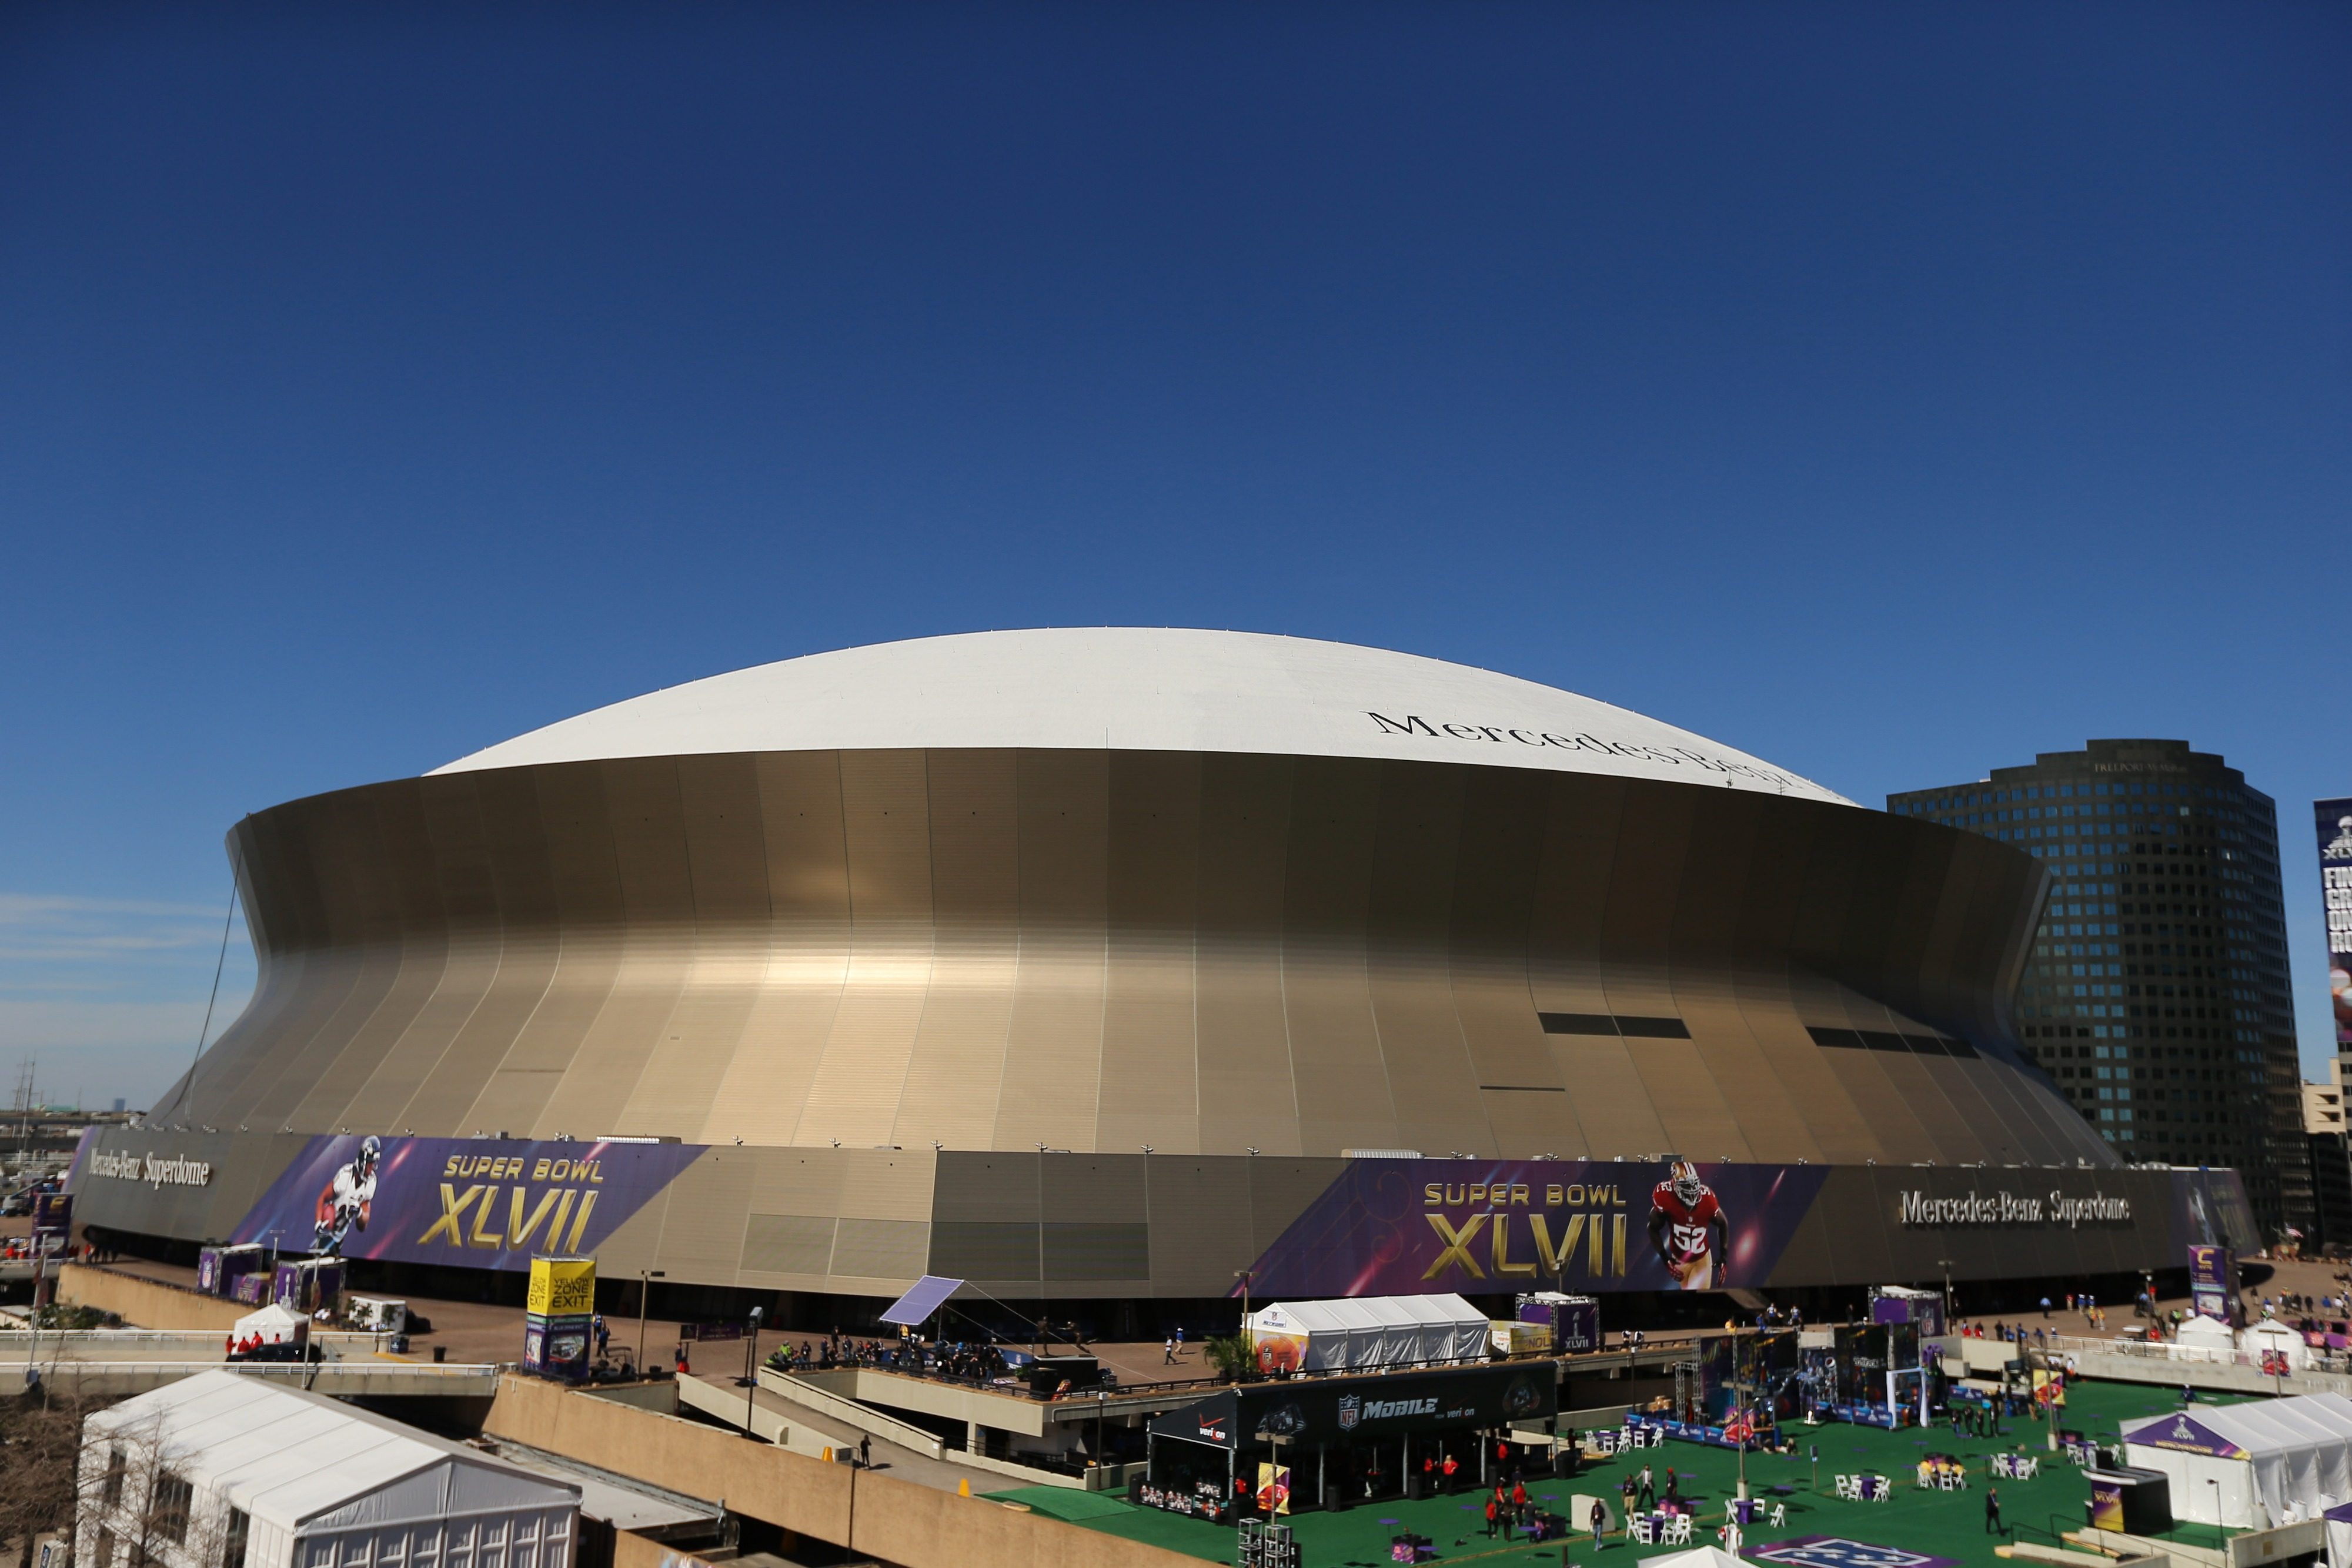 It took a Pope's blessing in 1987 to get a Saints playoff game in this building.